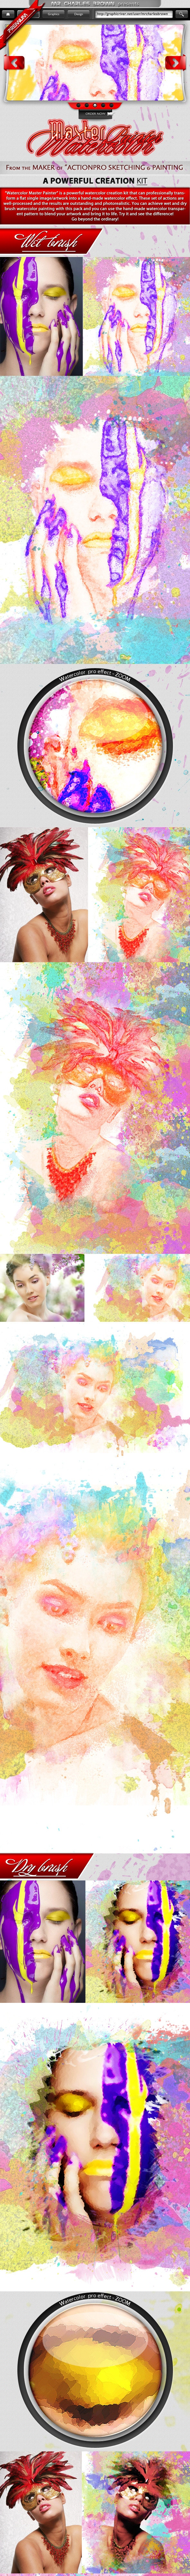 Watercolor Master Painter Action - Photo Effects Actions